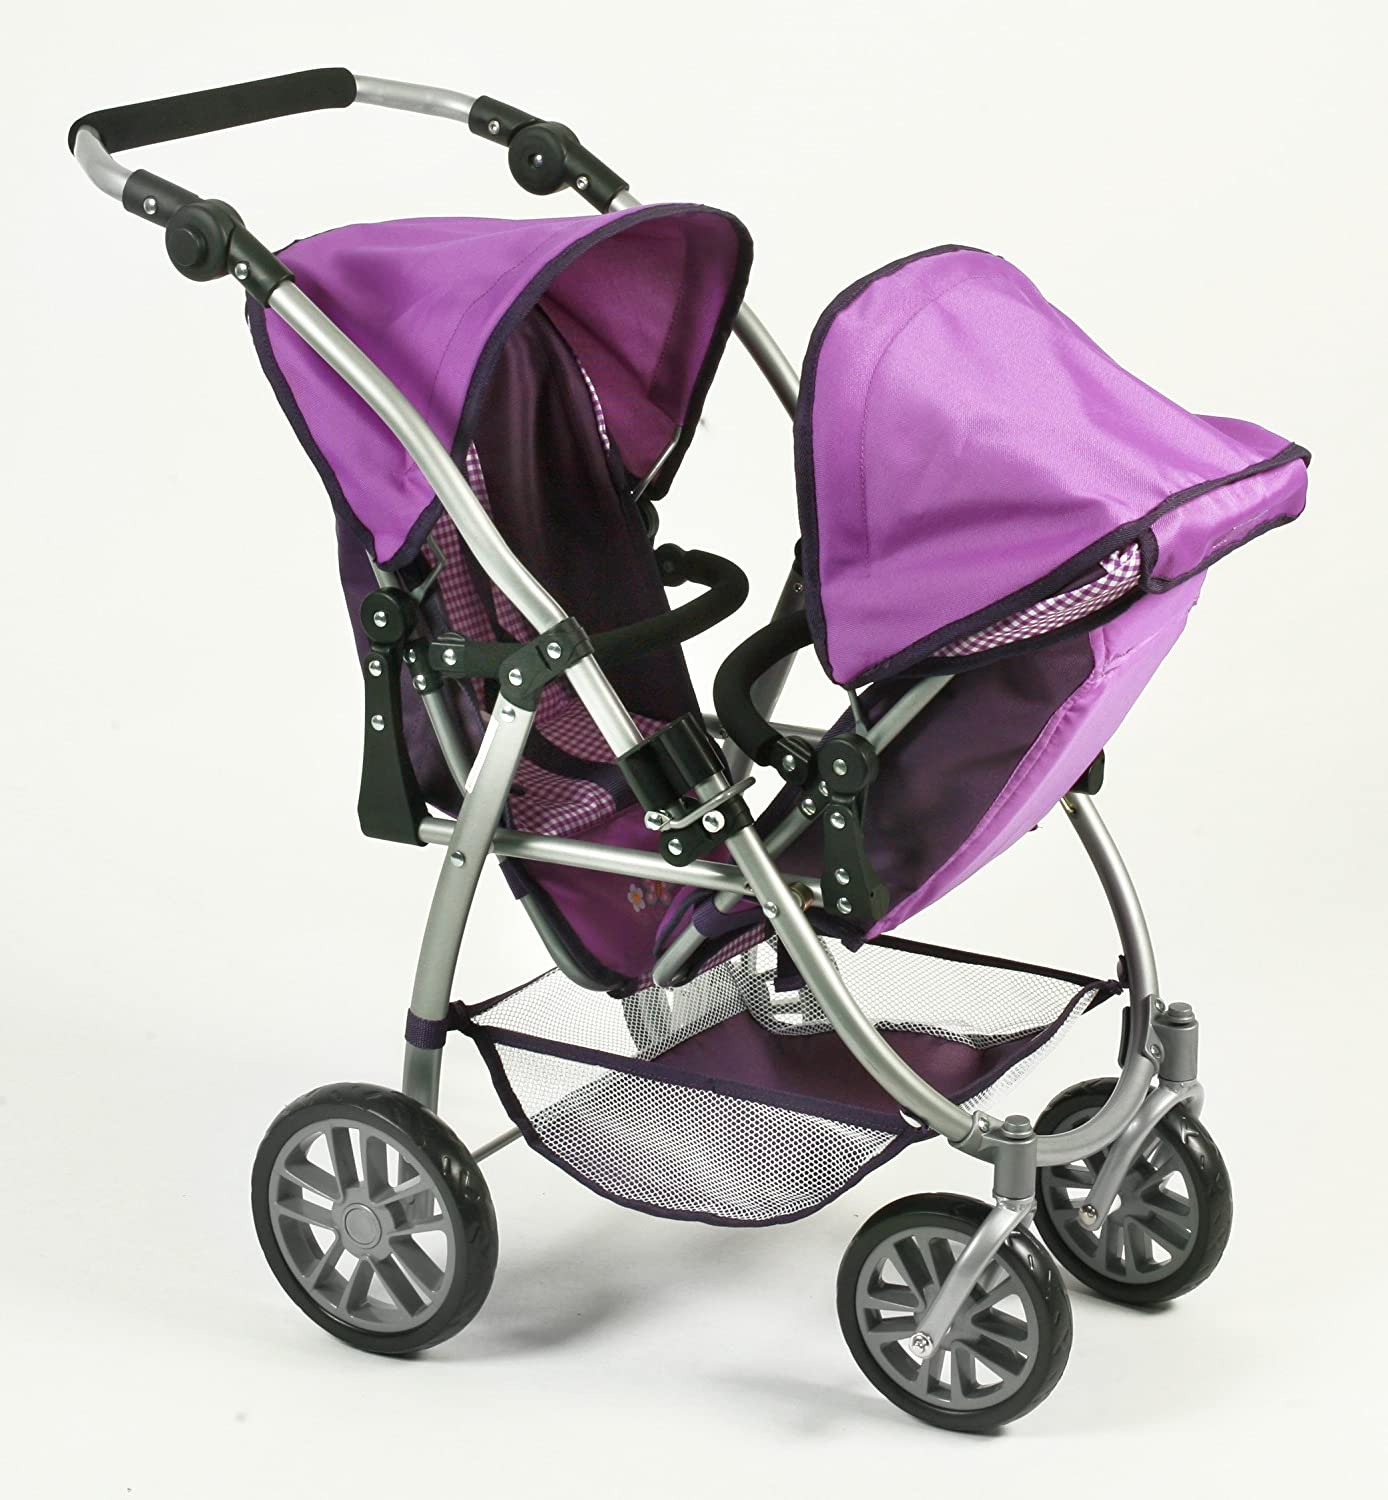 Amazon.es: Bayer Chic 2000 nbsp;689 28 Silla infantil doble Tandem Buggy Vario, purpur Checker, color lila: Juguetes y juegos